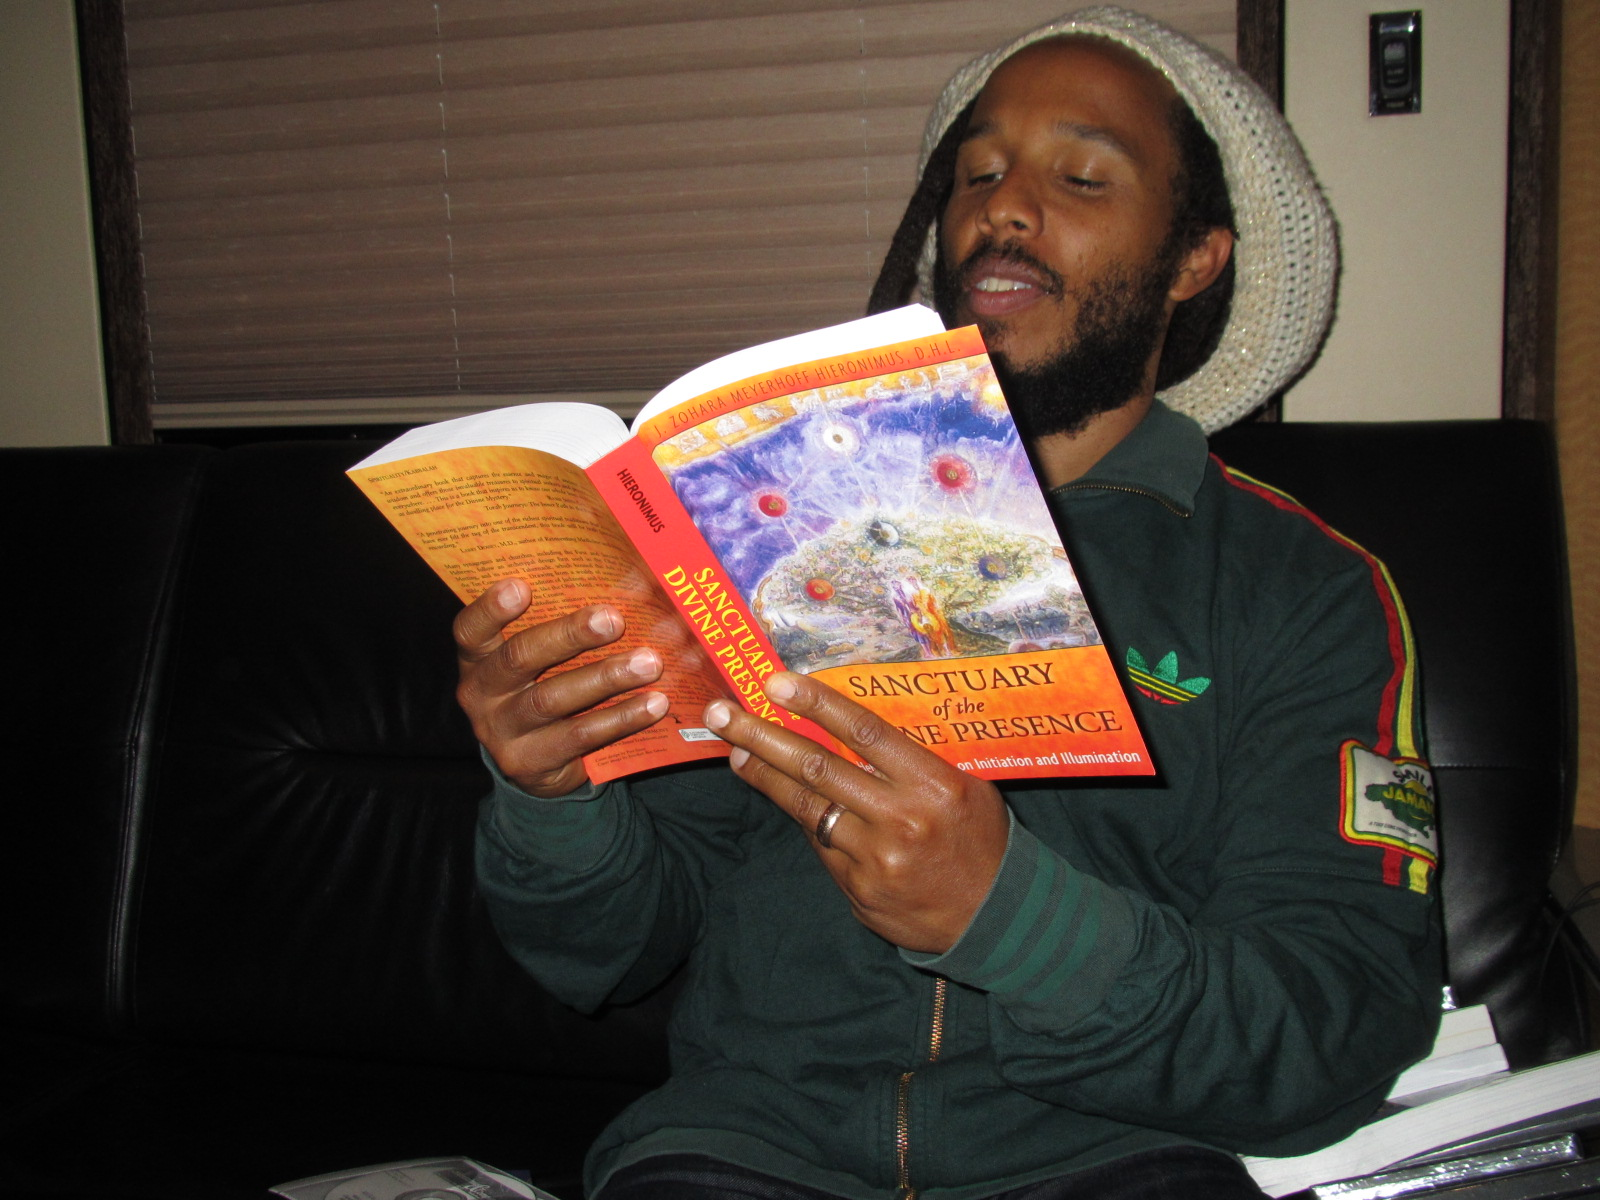 Ziggy Marley Reading Sanctuary of the Divine Presence